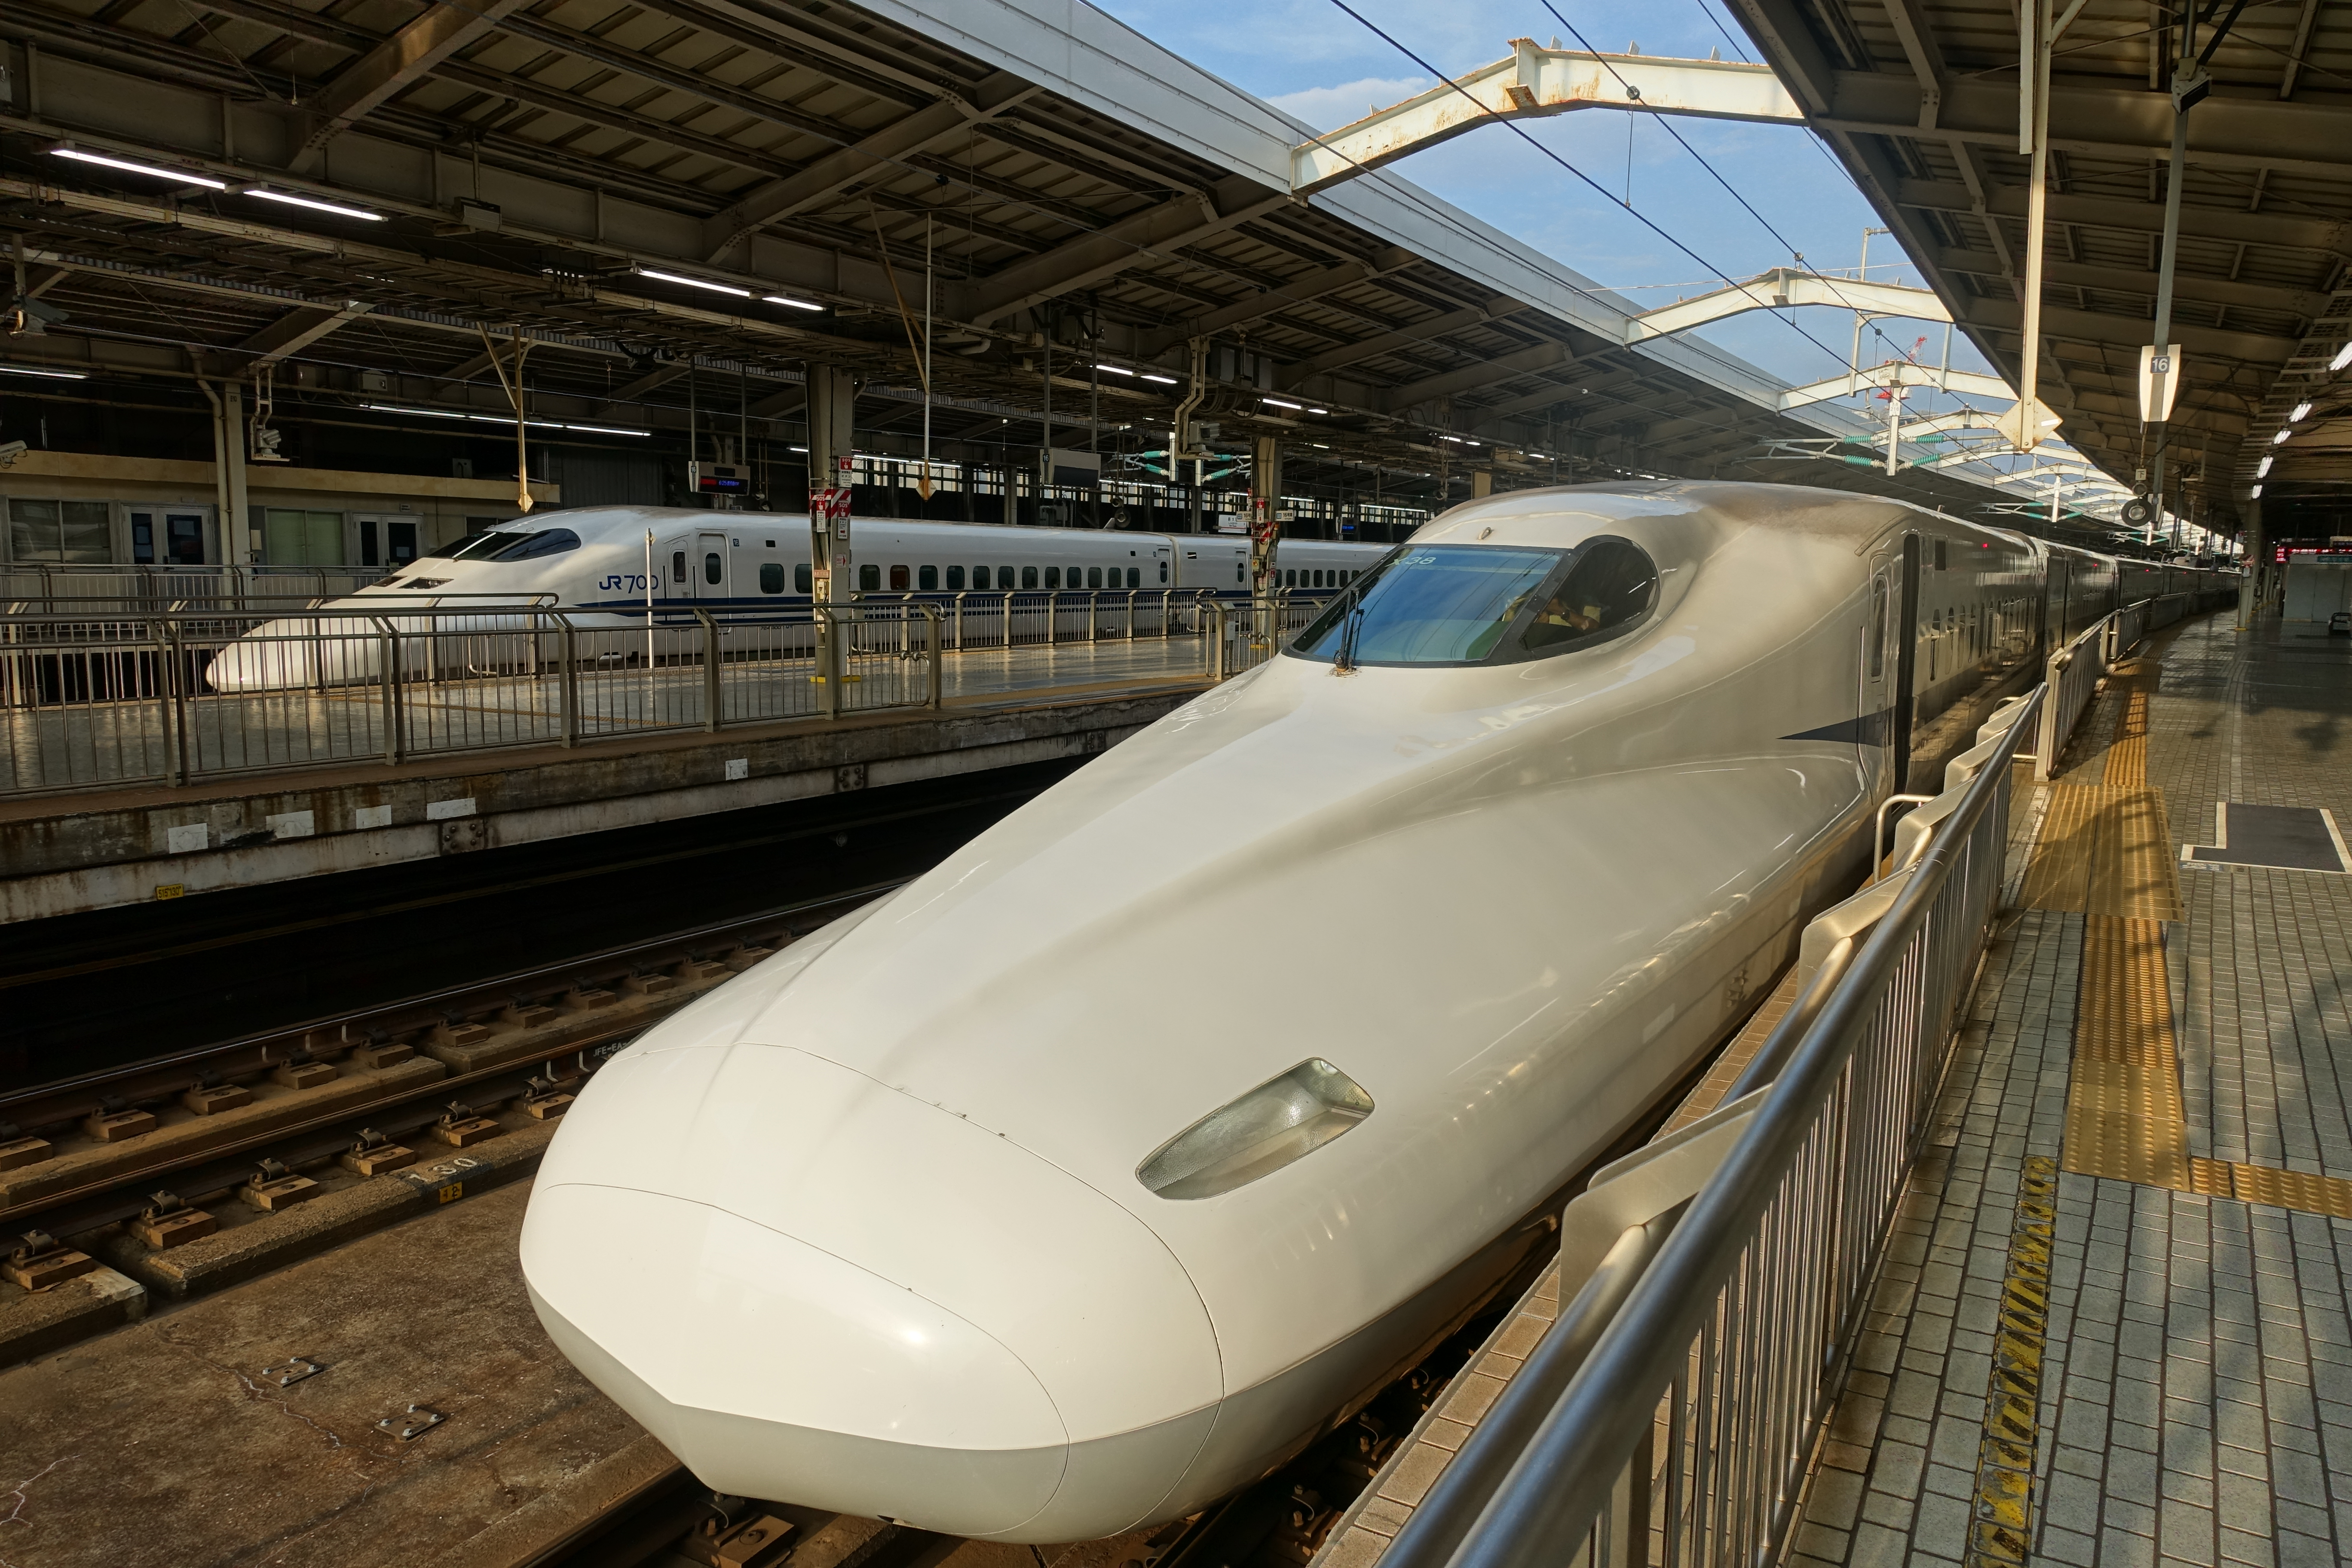 Nose of a Shinkansen